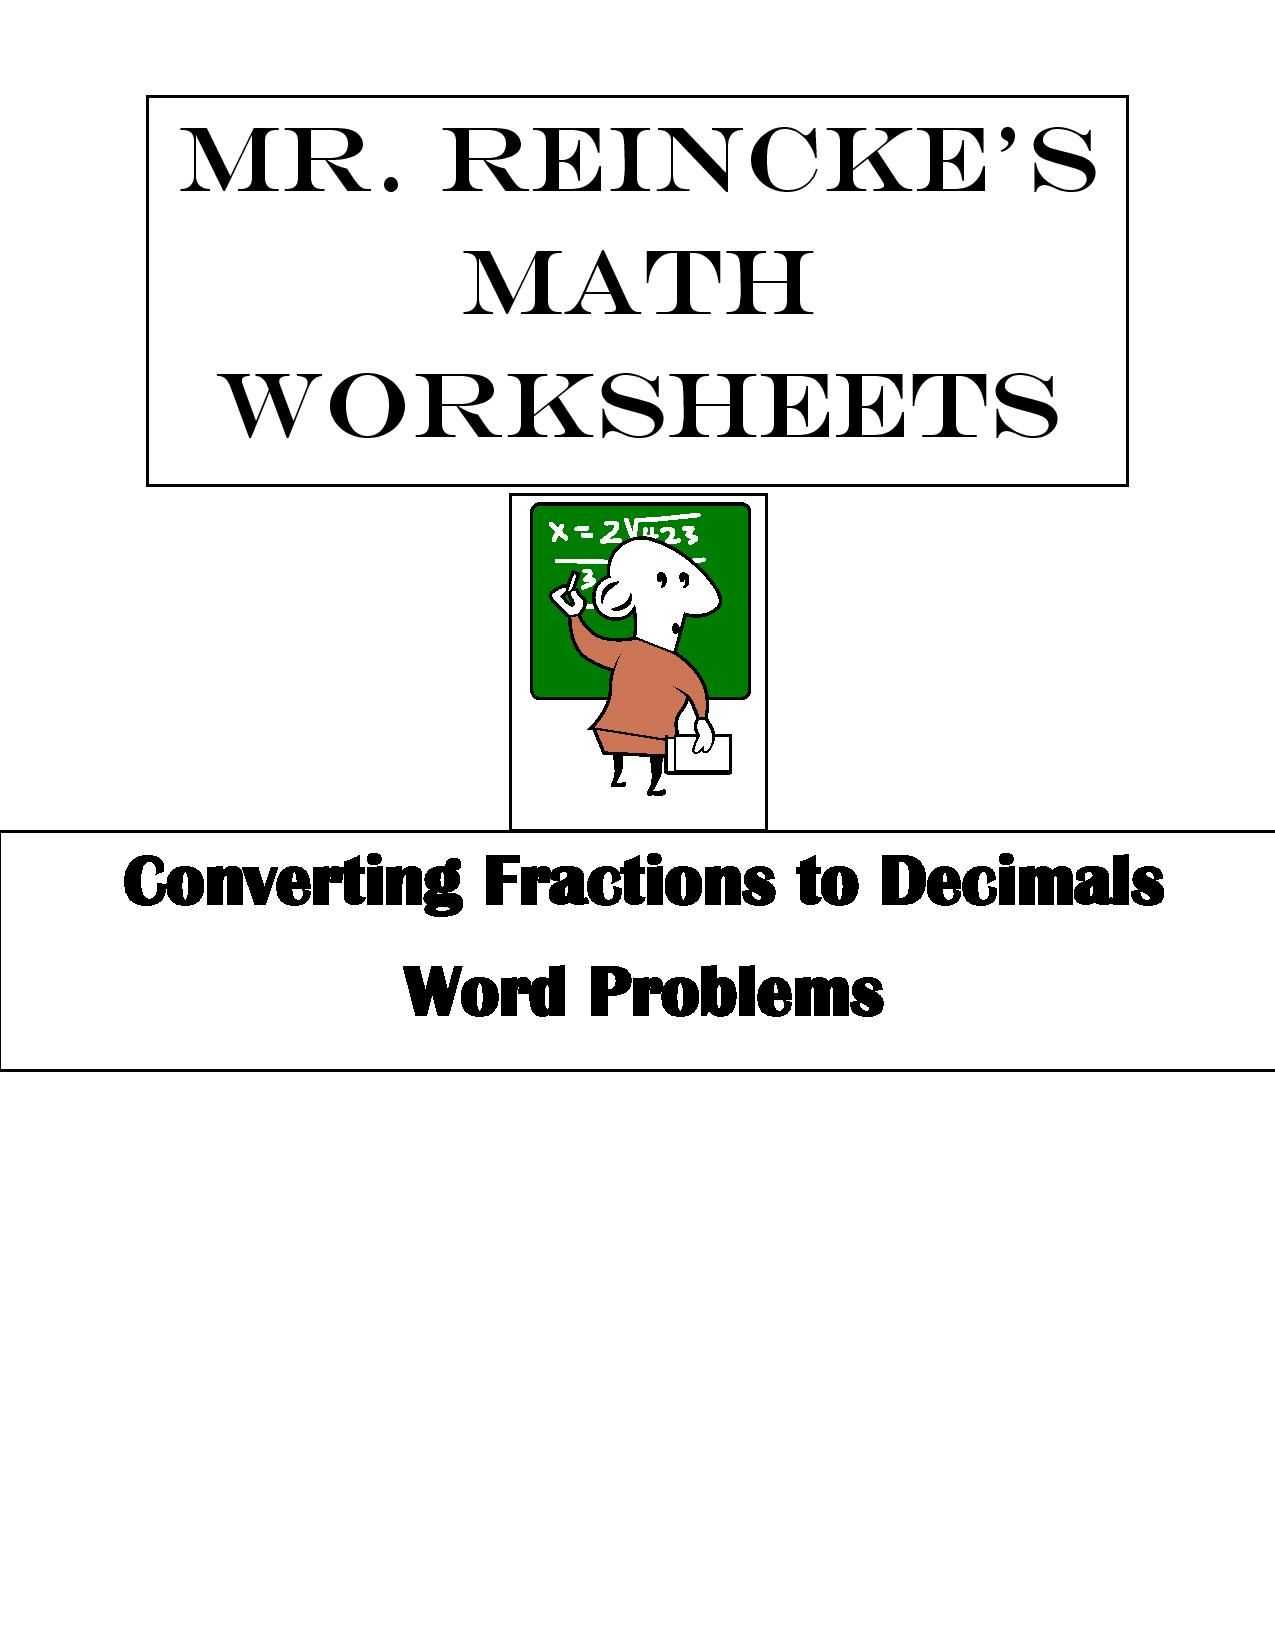 Equivalent Expressions Worksheet or Converting Fractions to Decimals Word Problems 4 Worksheets